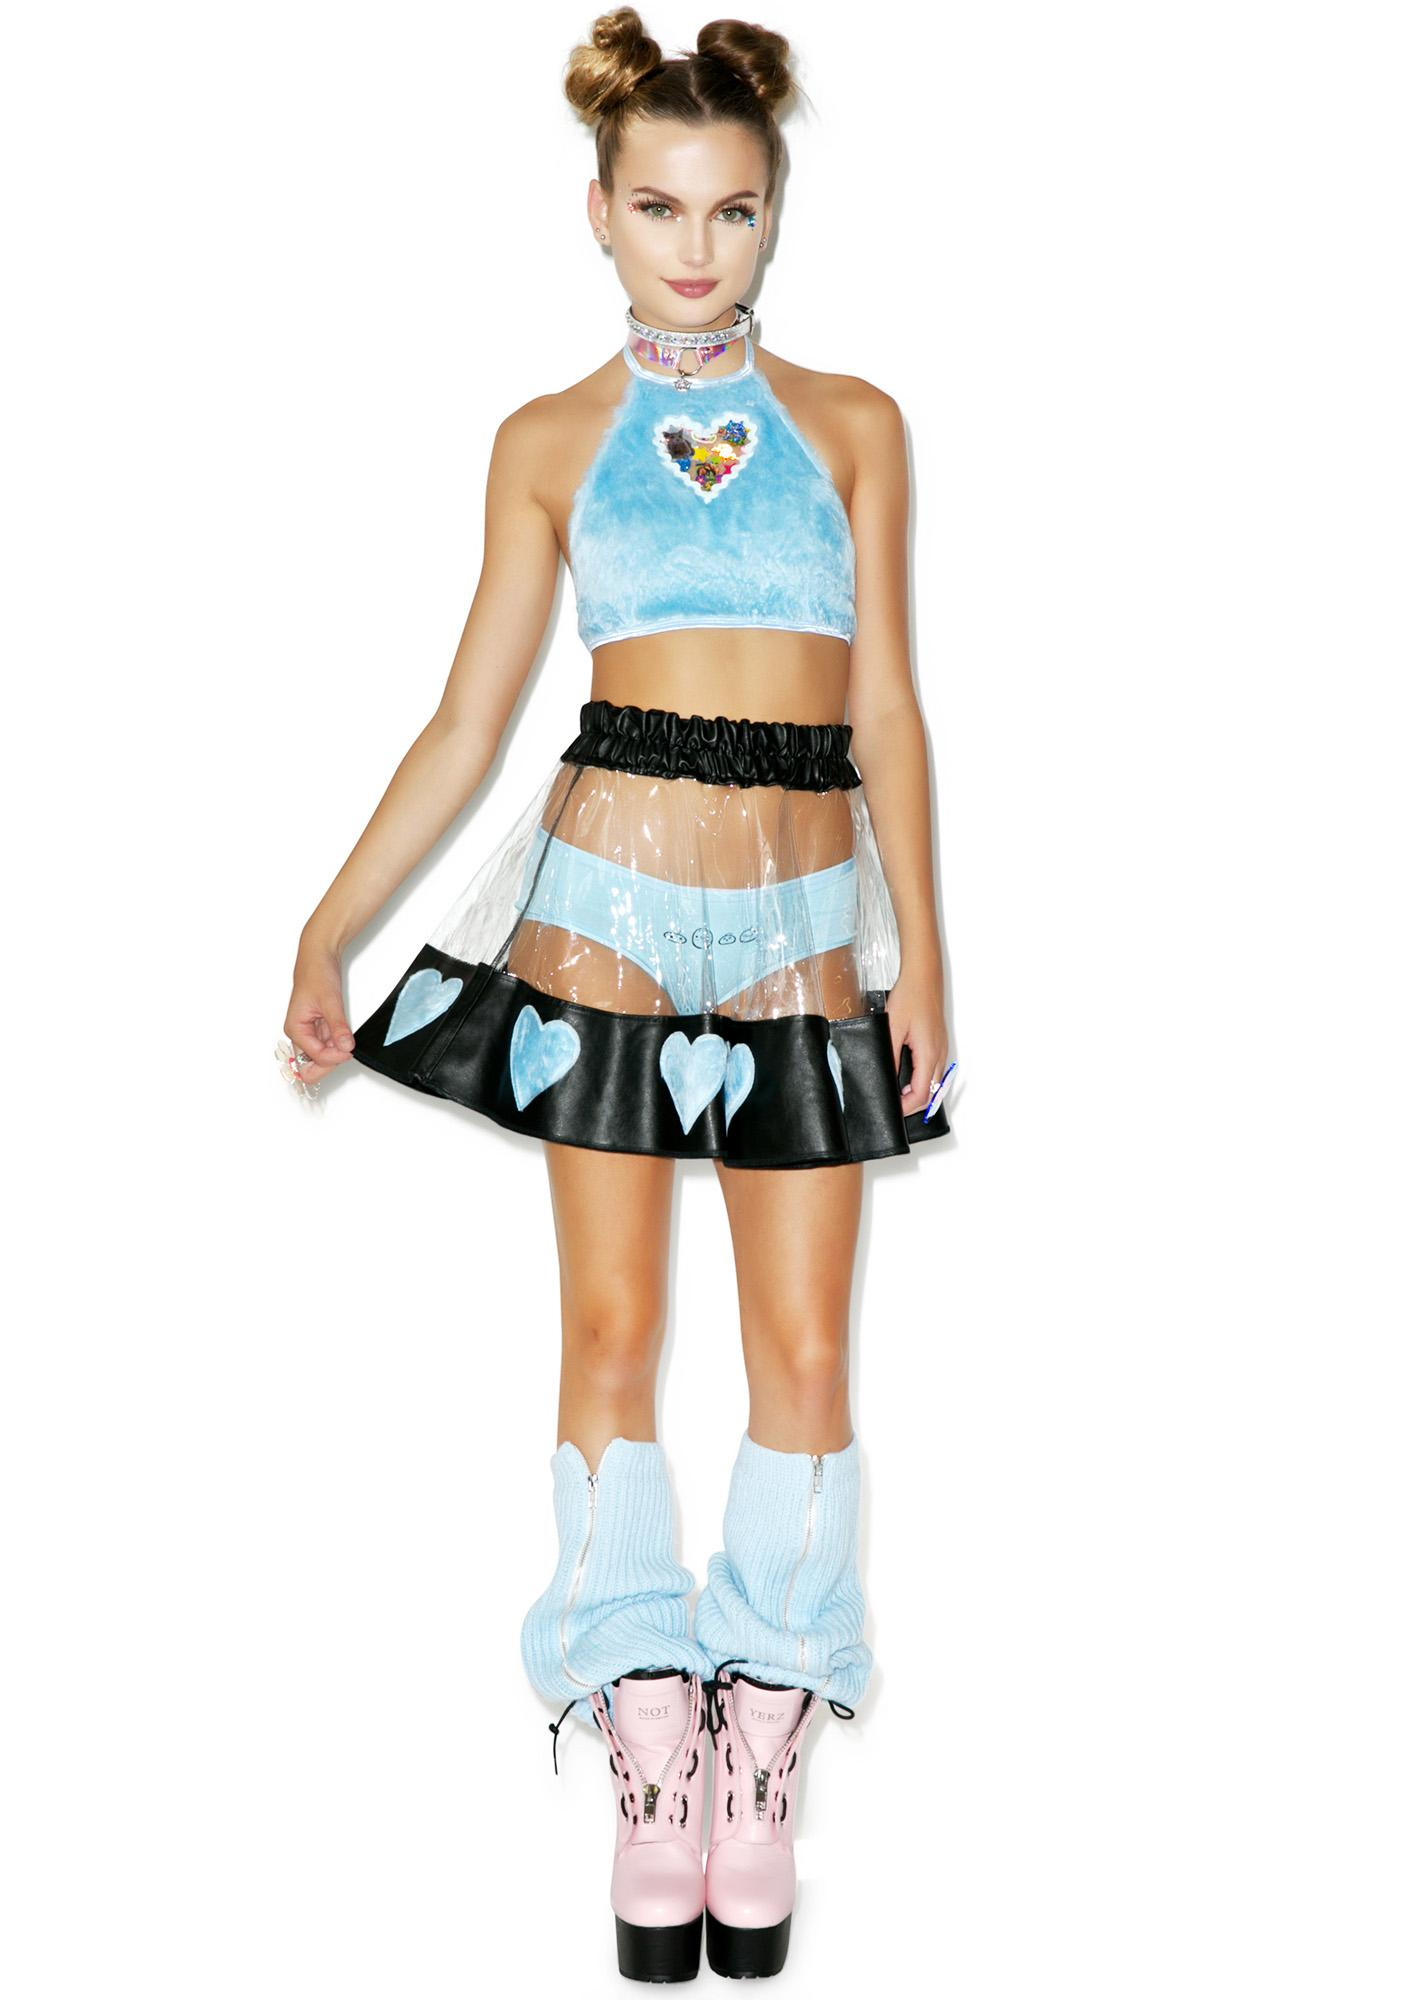 Indyanna Courtney Lust PVC Heart Skirt